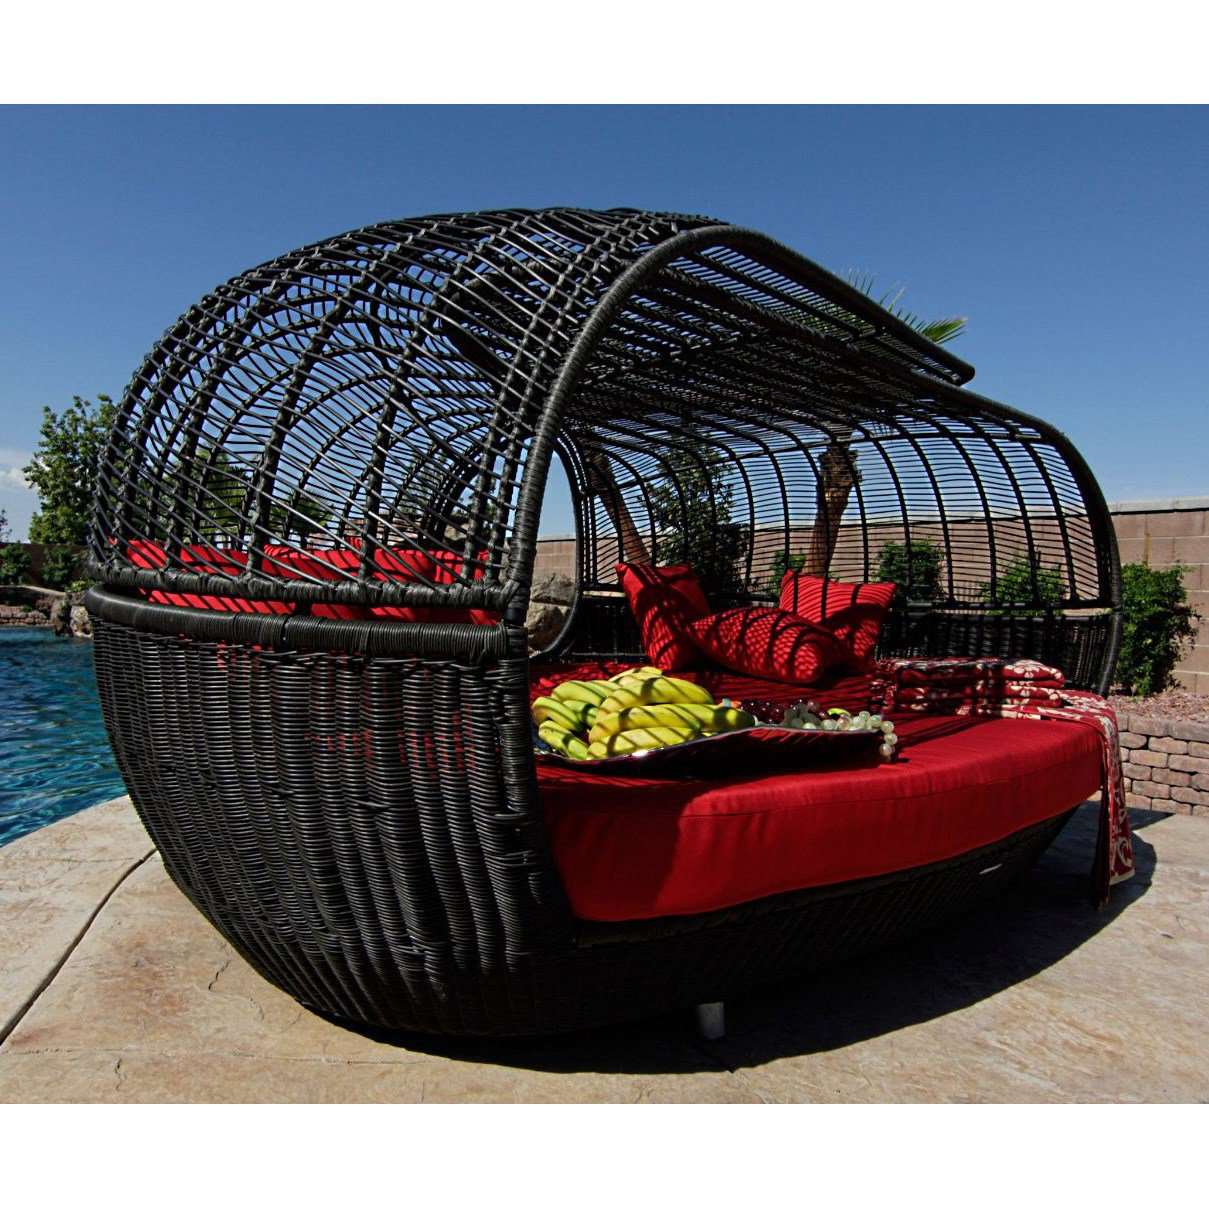 Patio Furniture Handcrafted Outdoor From Amazon Epic